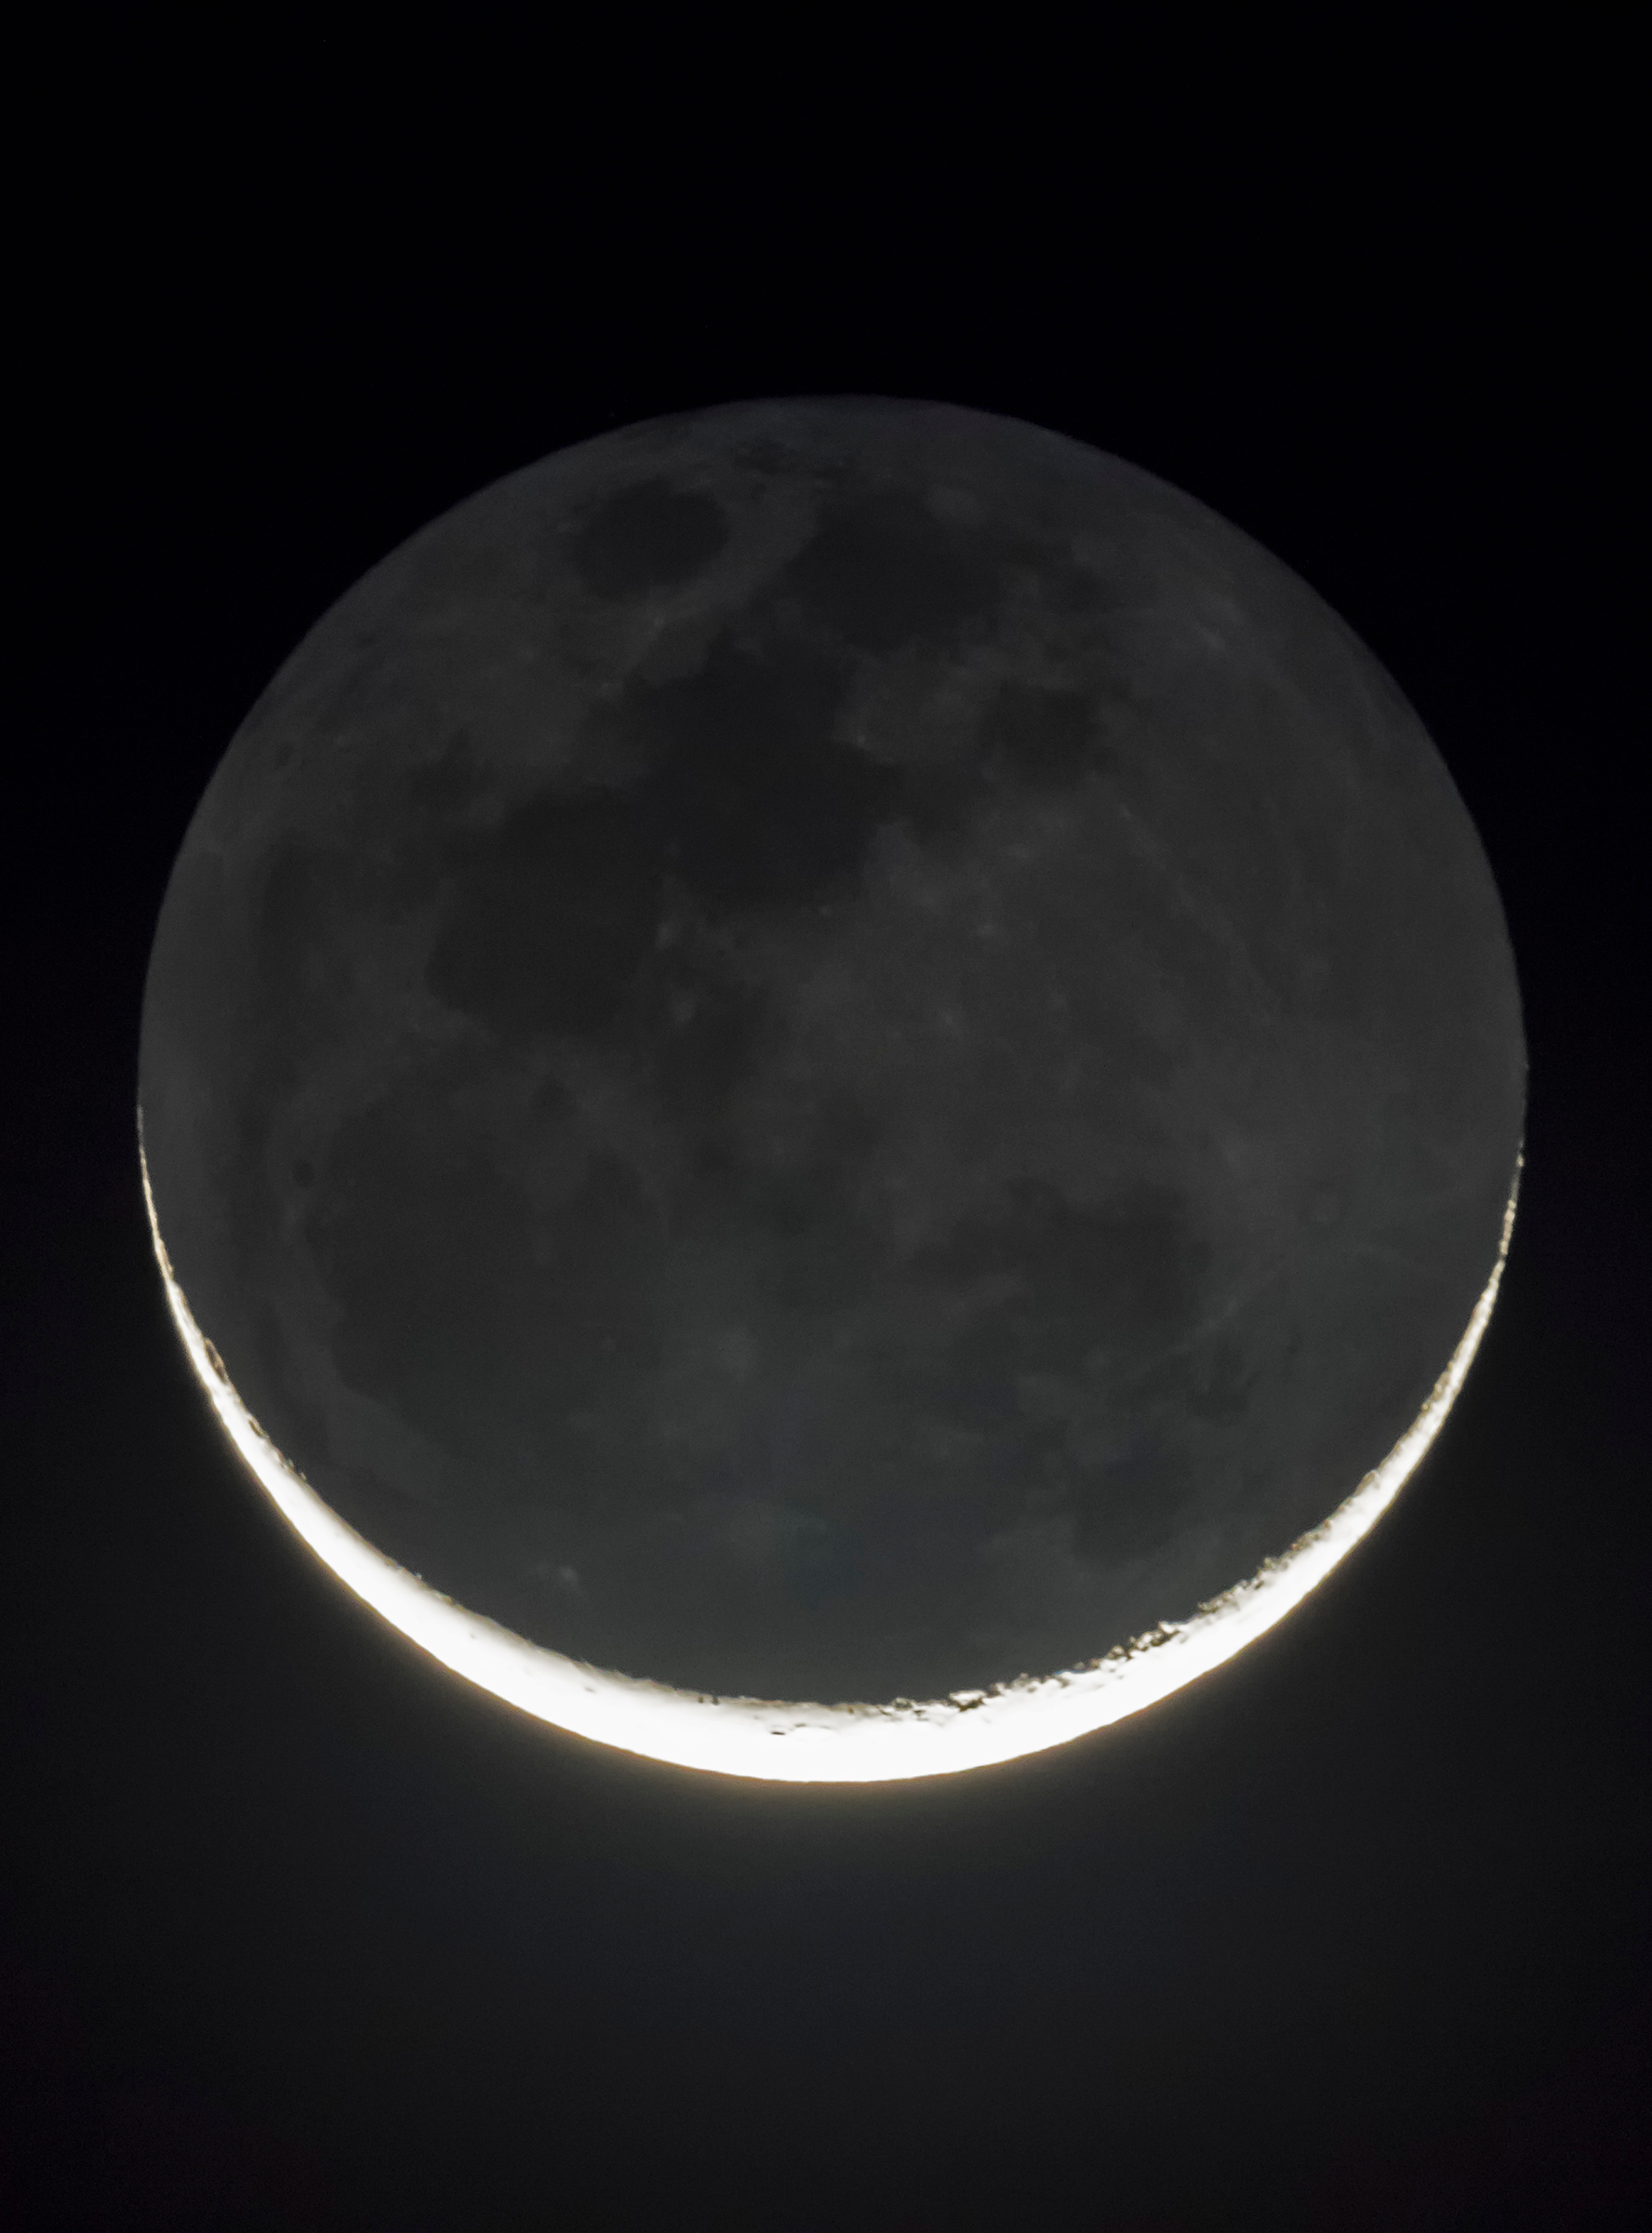 New moon february 2017 lunar cycle spiritual meaning buycottarizona Image collections